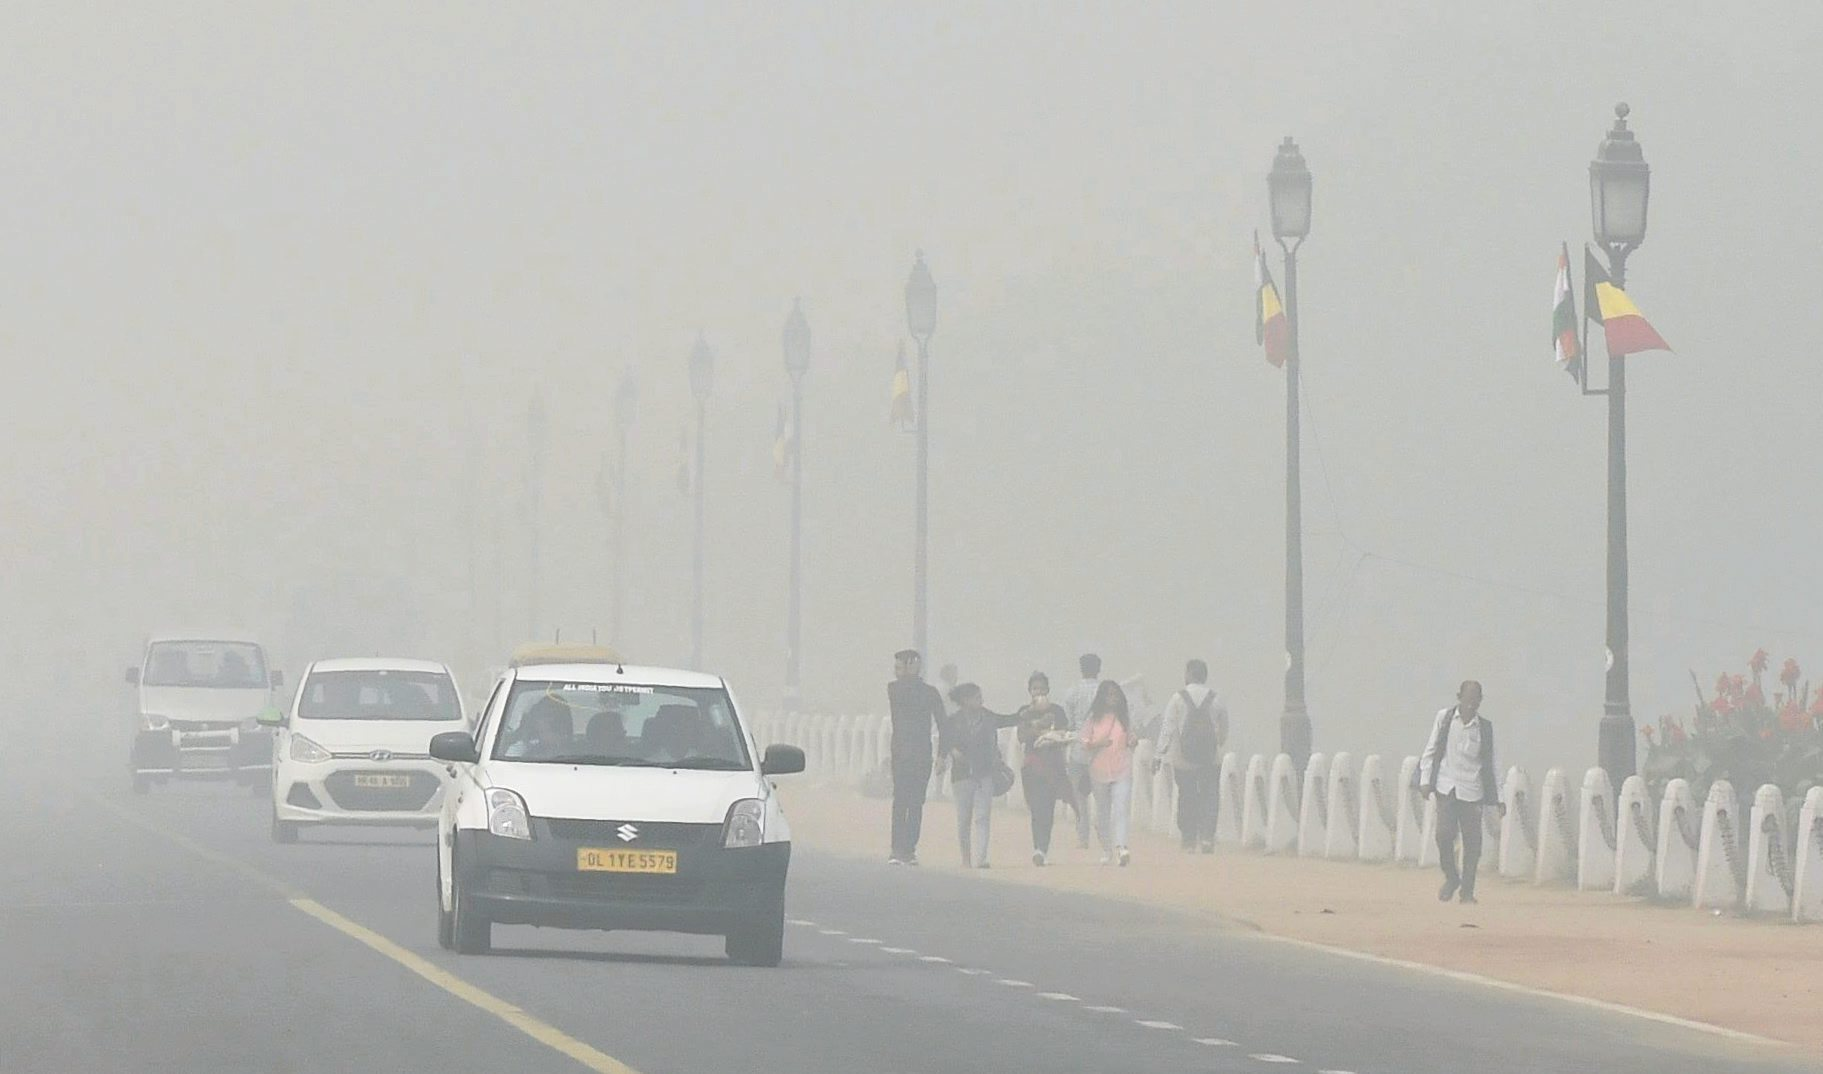 Pedestrians and motorists make their way through thick smog in New Delhi on Tuesday (PTI)